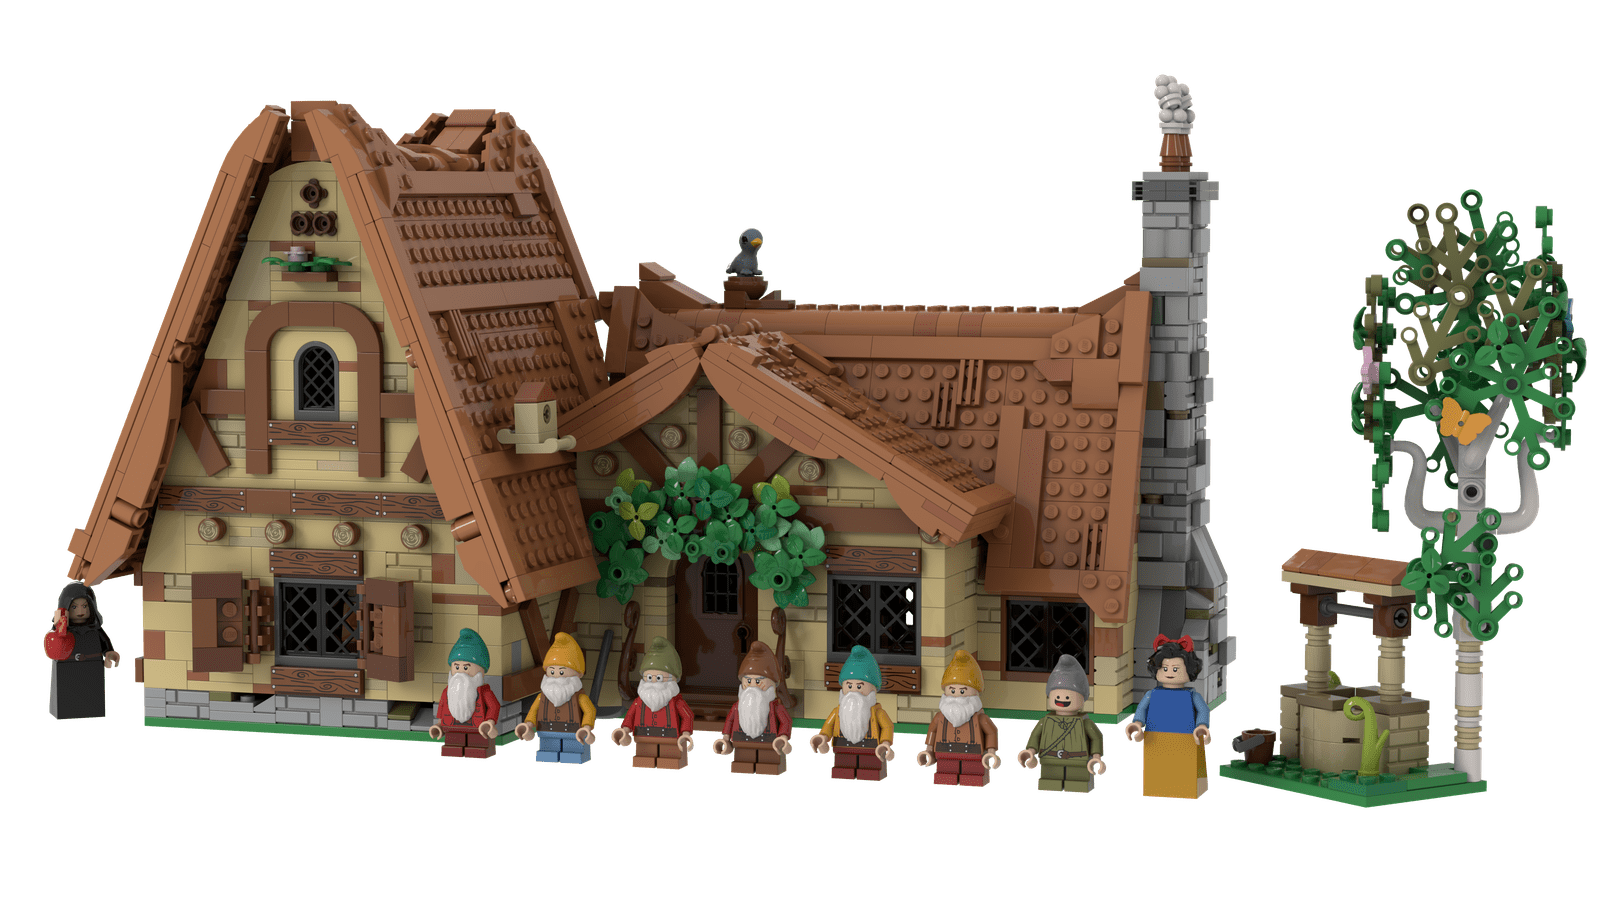 LEGO IDEAS: The Seven Dwarfs House LEGO Project 2